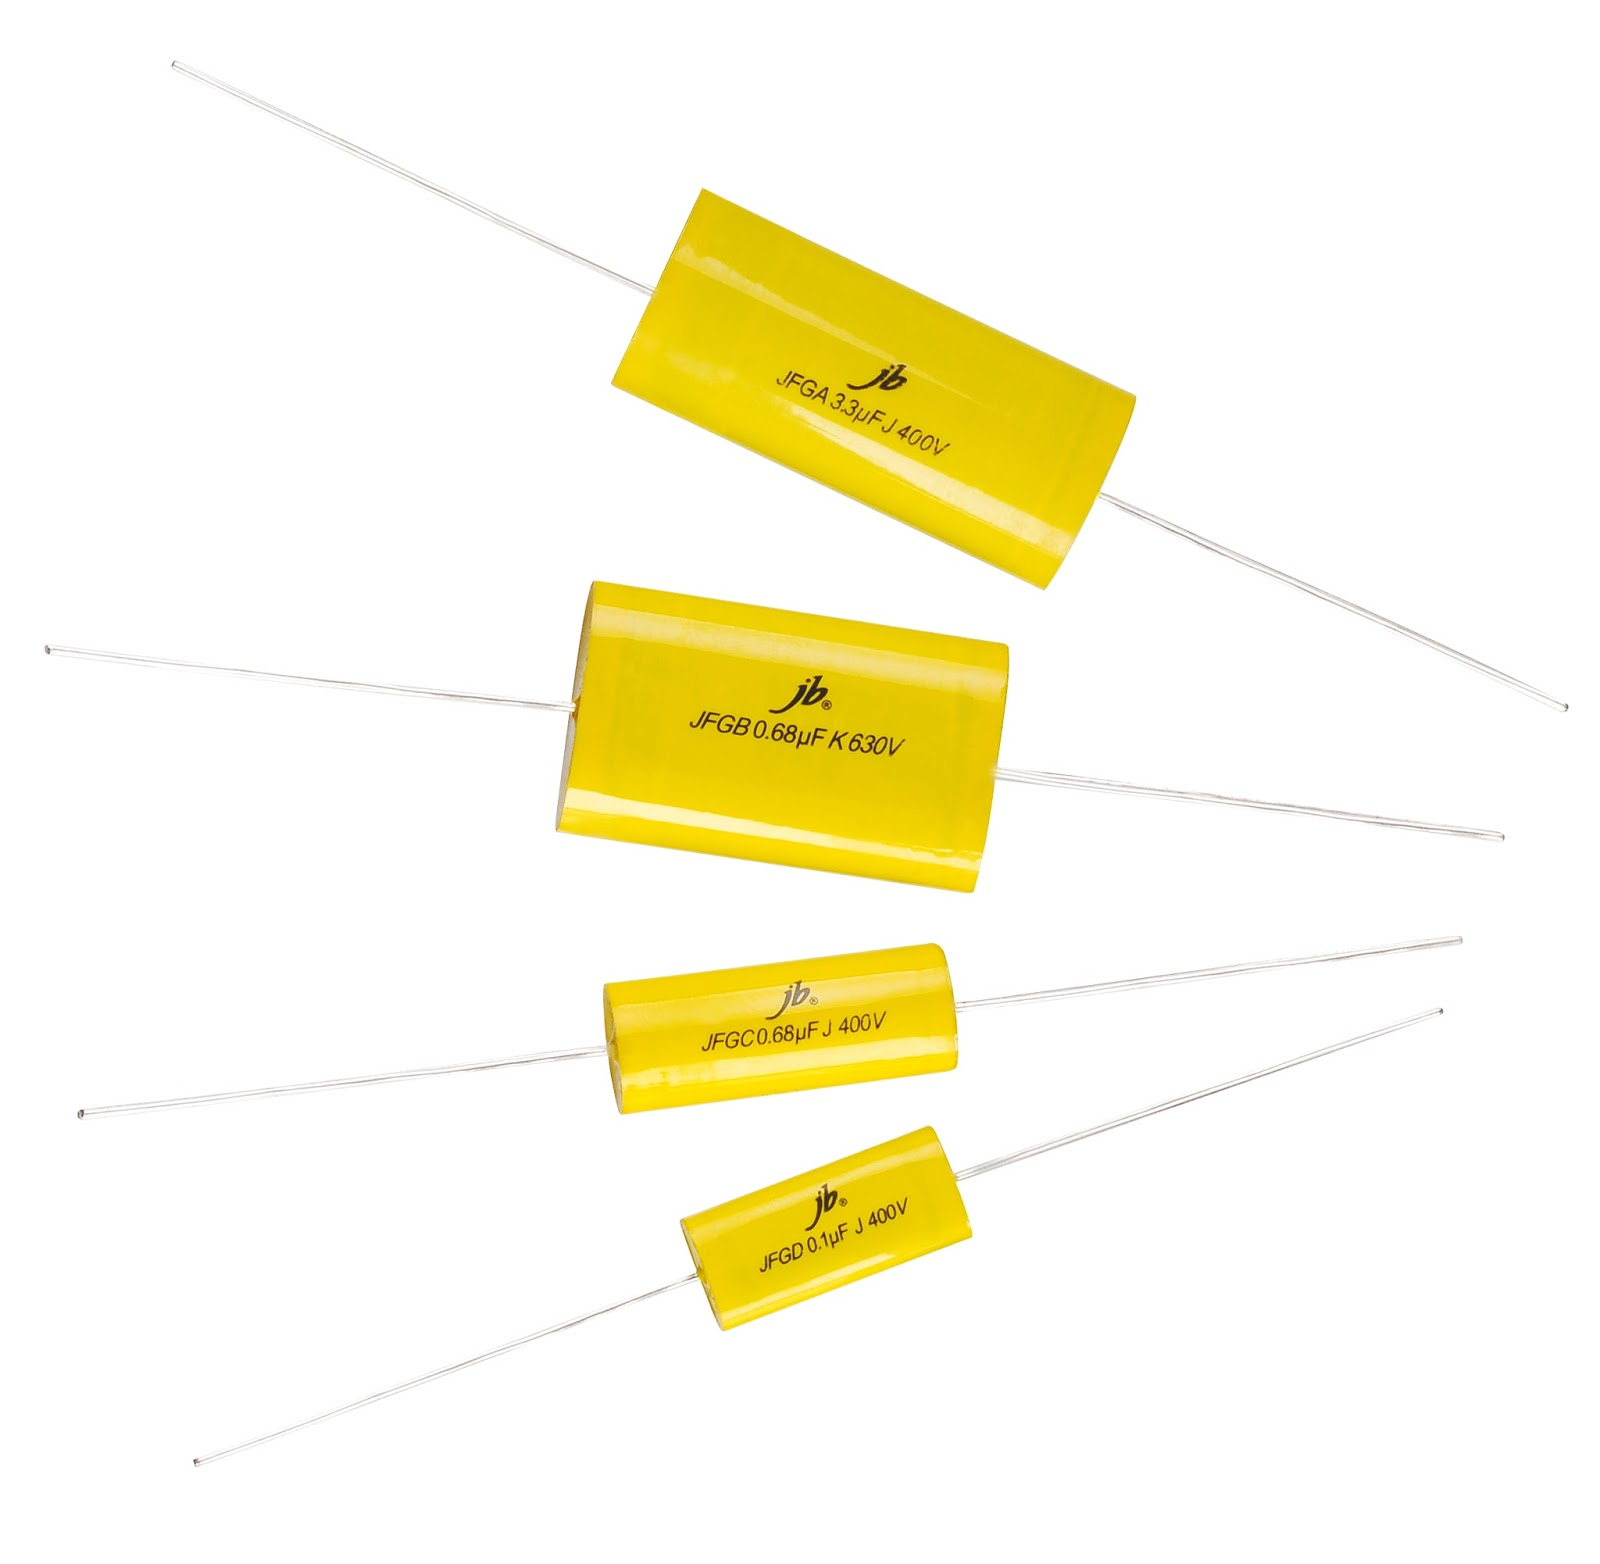 Jsx Series Of Metallised Polypropylene Film Capacitors Provide Solution The 1uf Capacitor And 2uf Combine In Jfgc Cycloidal Jfgd Flat Oval Which Are Constructed From Cover A Broader Range Input Voltages